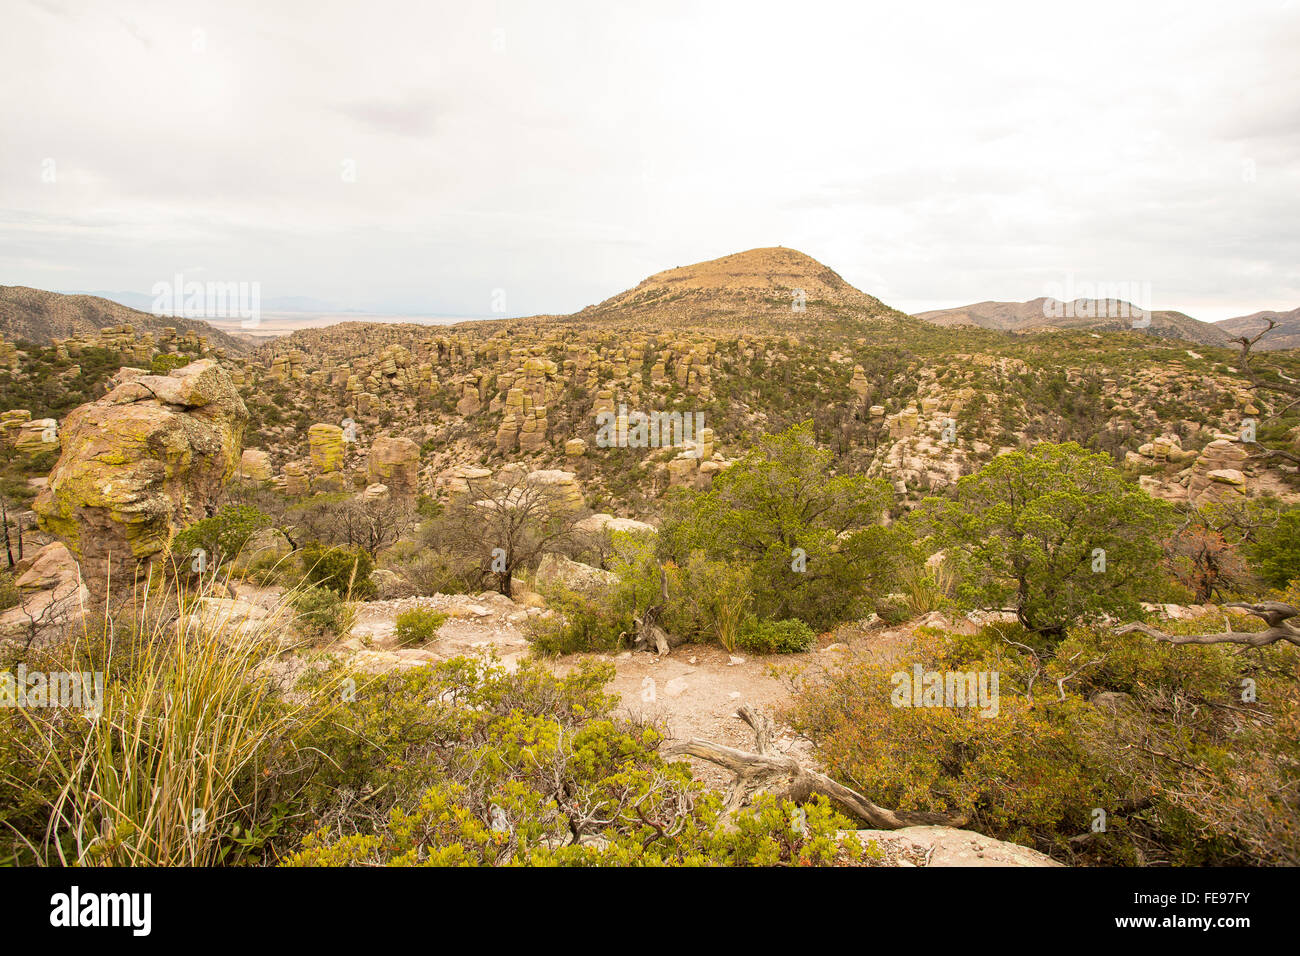 Organ Pipe cactus national monument in southern arizona - Stock Image